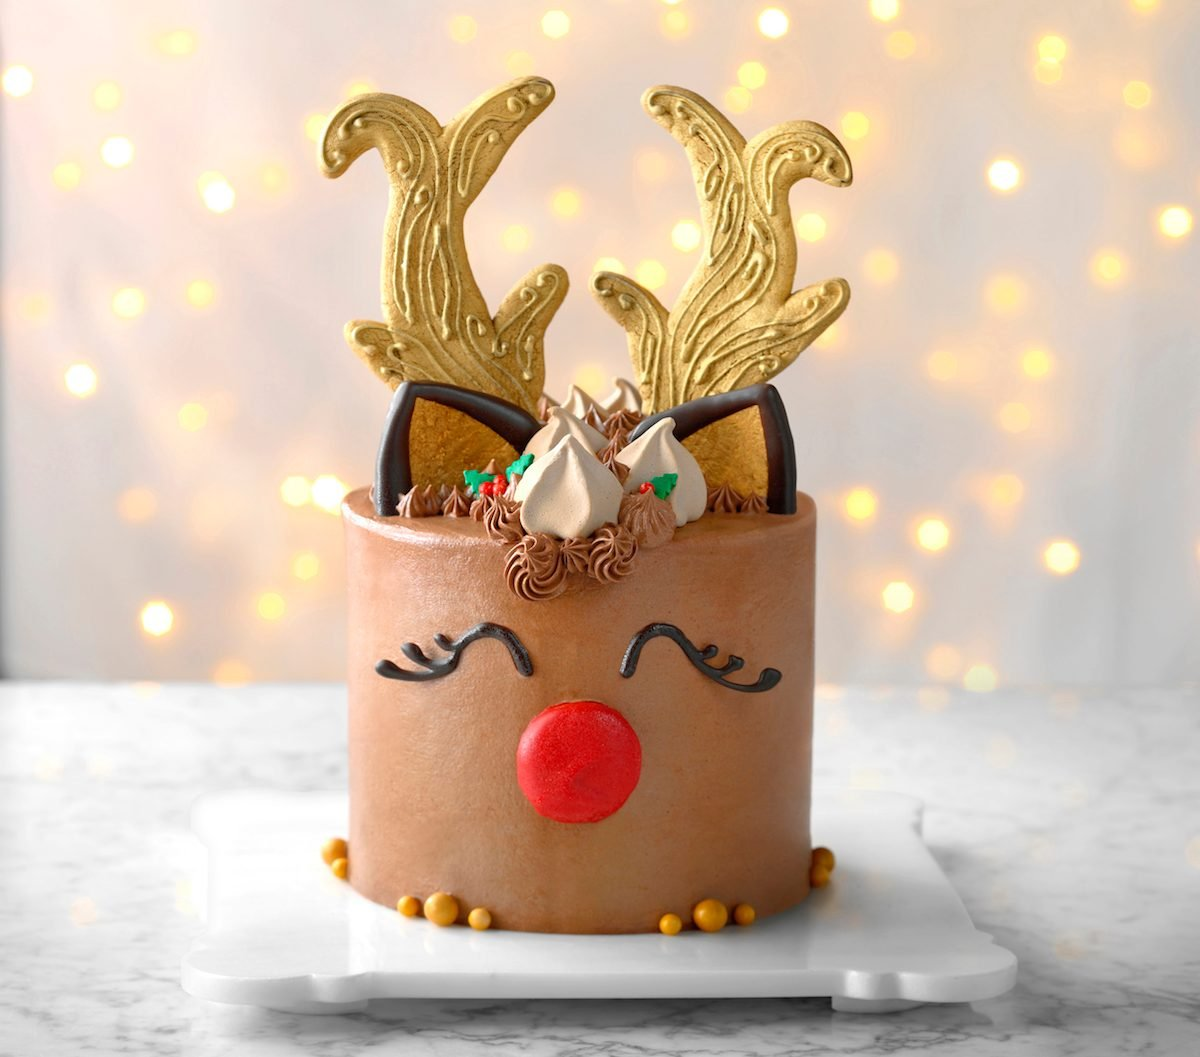 Decorated holiday reindeer cake